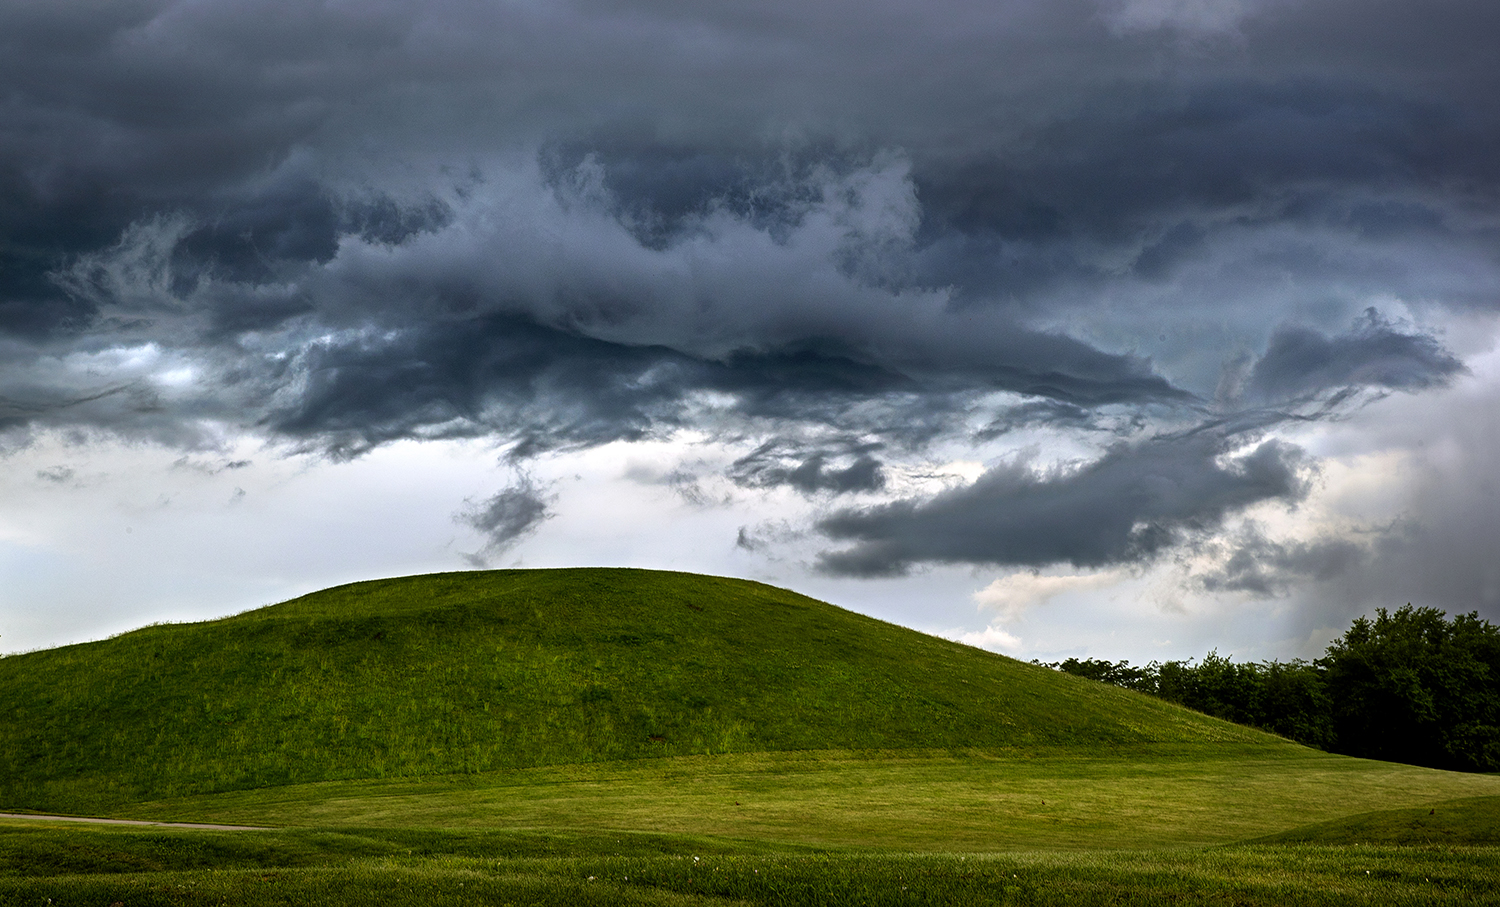 A system of dark, rain-bearing clouds move north east above the hill at Centennial Park Thursday, June 21, 2018. Nearly three quarters of an inch of rain fell before the sun set at 8:30 p.m. on the summer solstice, the shortest night of the year in the Northern Hemisphere. [Ted Schurter/The State Journal-Register]